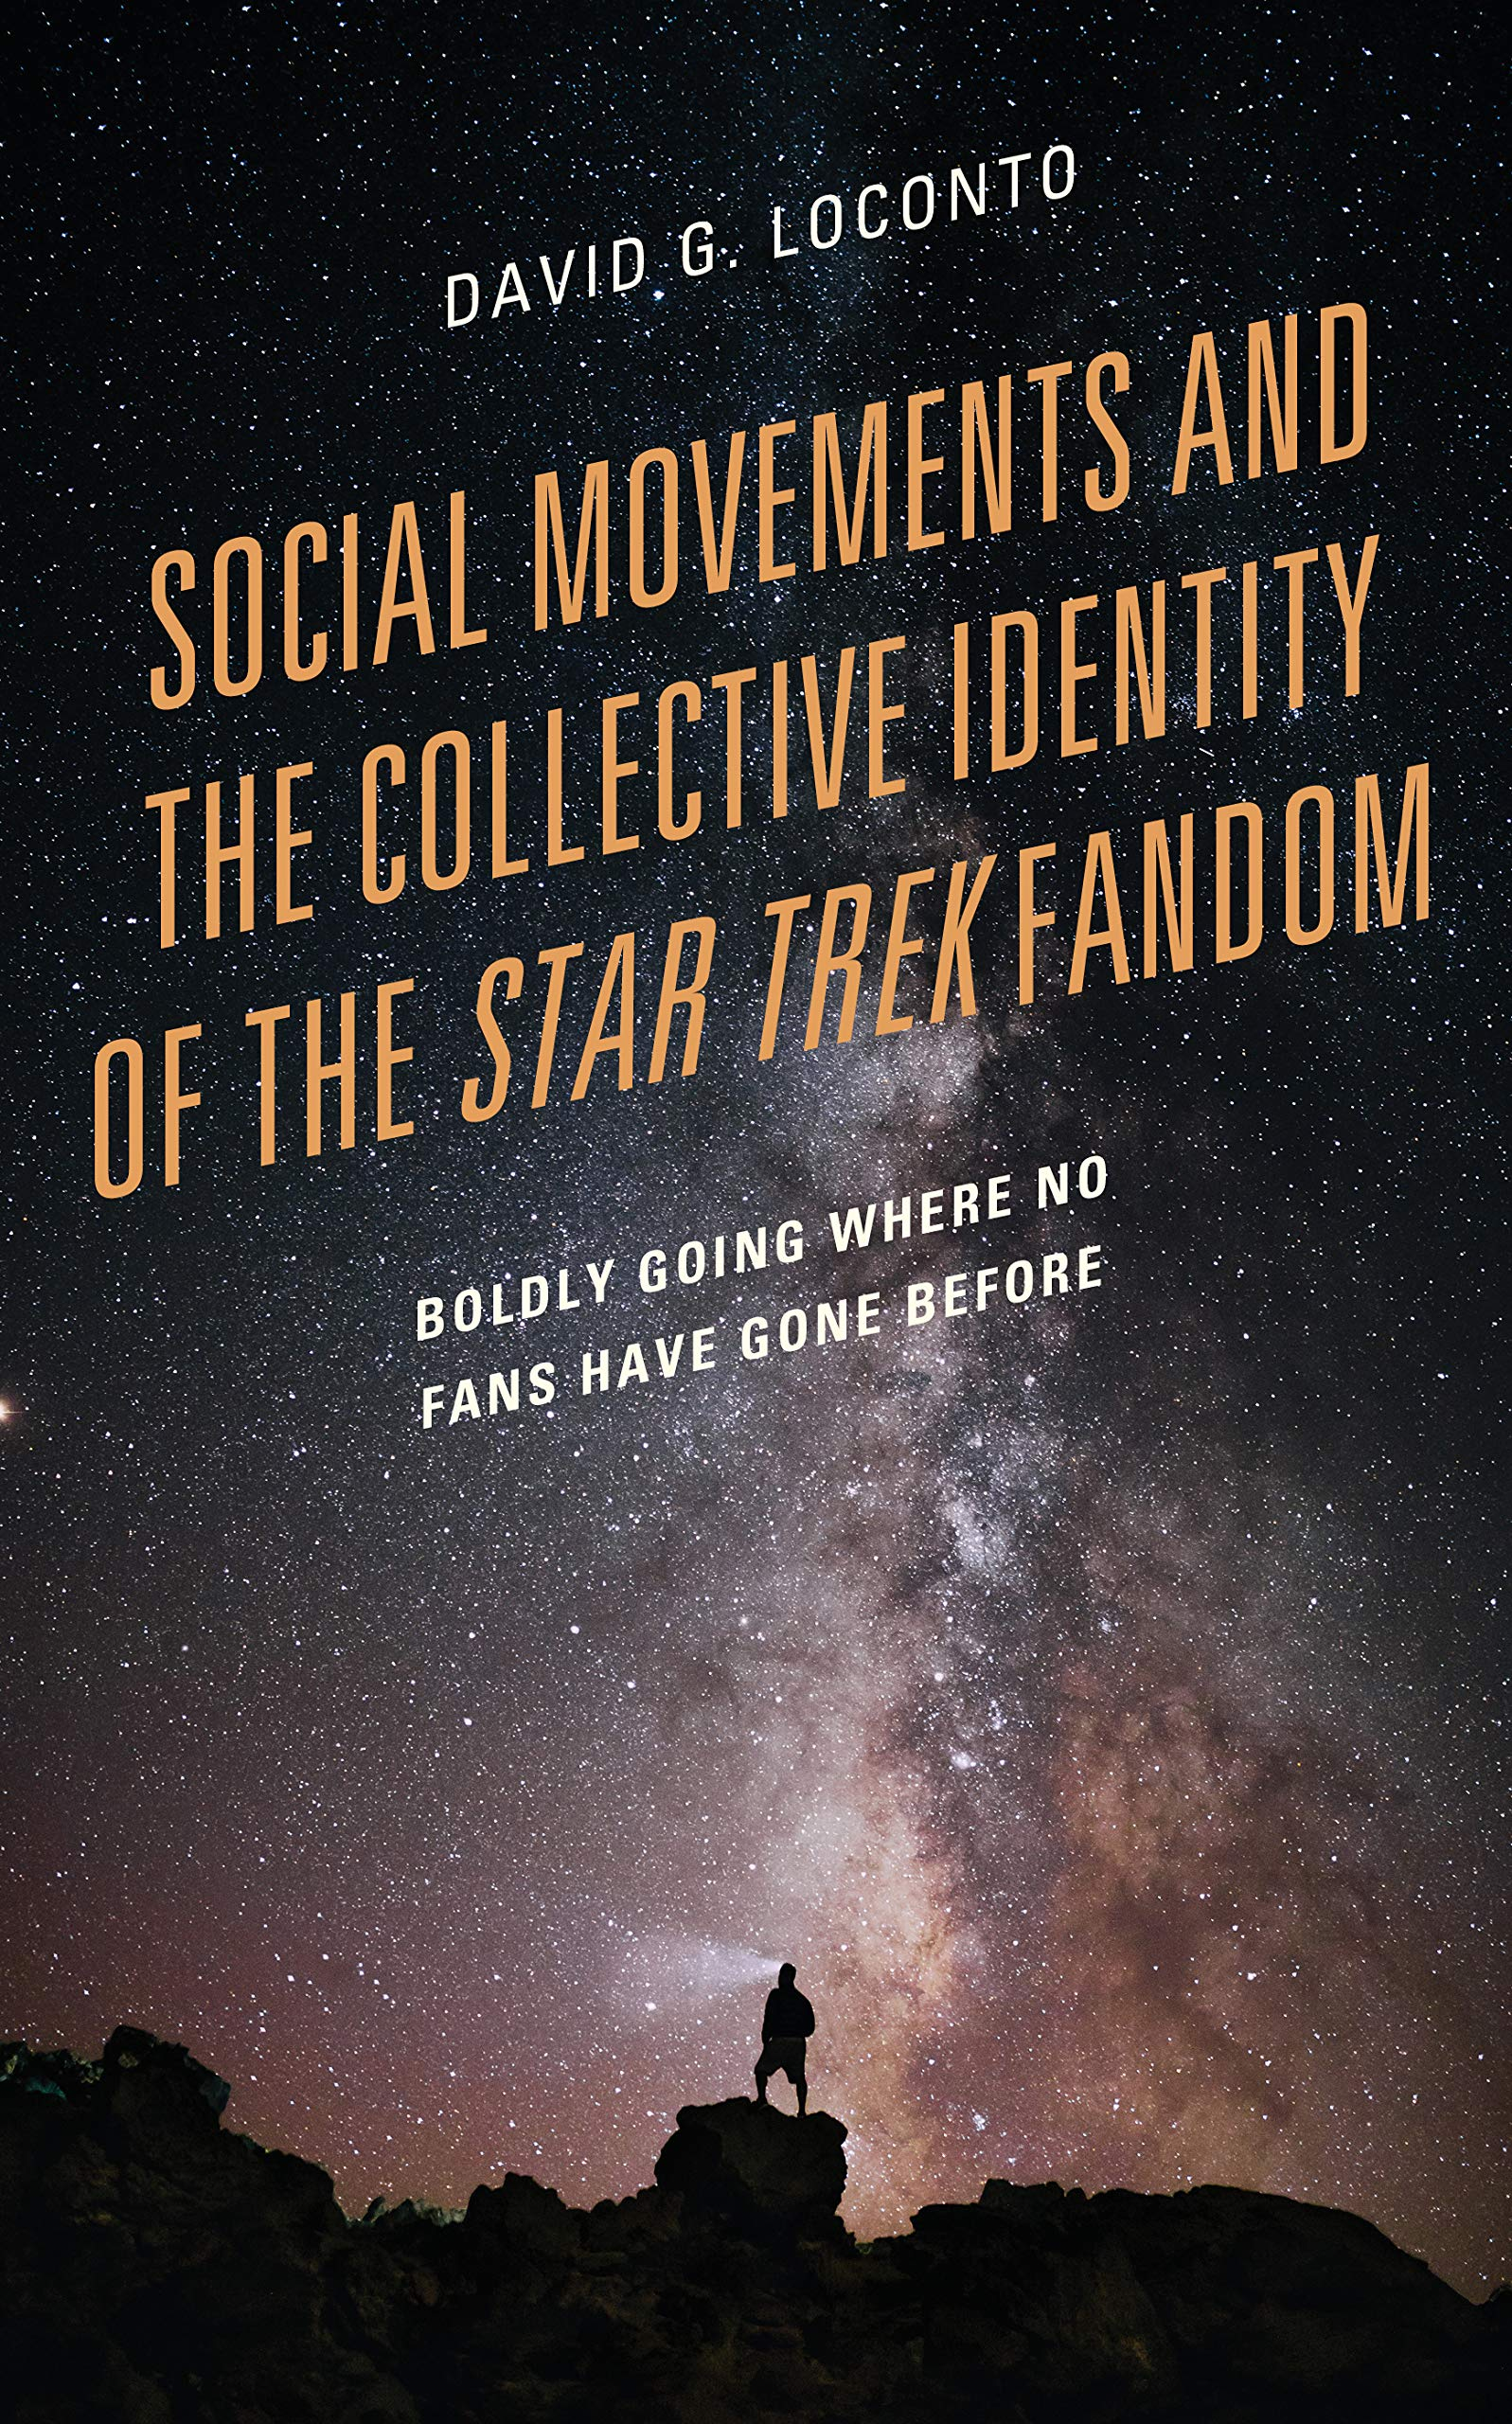 Social Movements and the Collective Identity of the Star Trek Fandom